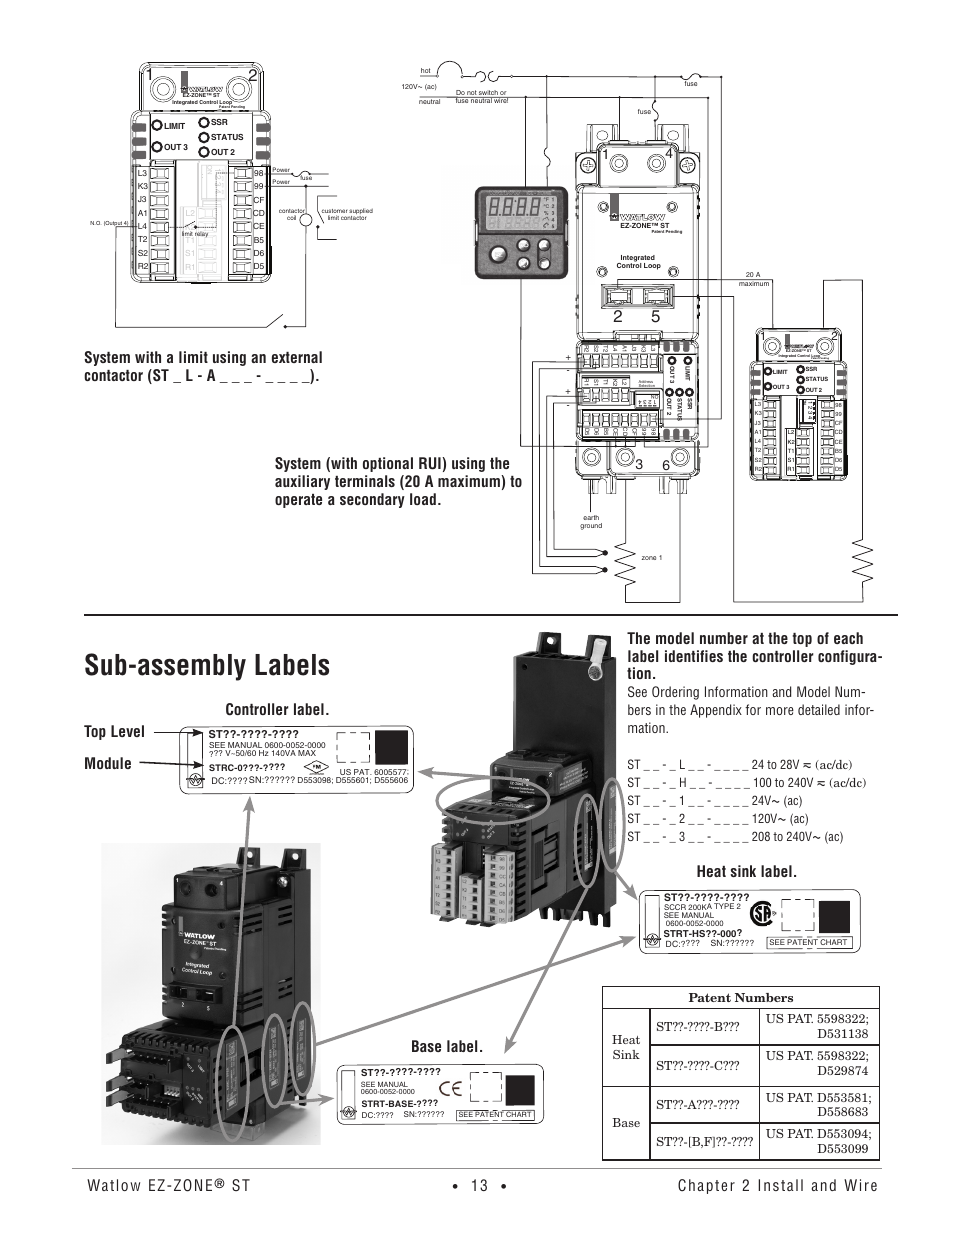 Subassembly labels Watlow ezzone Chapter 2 install and wire – Ez-zone Wire Diagram